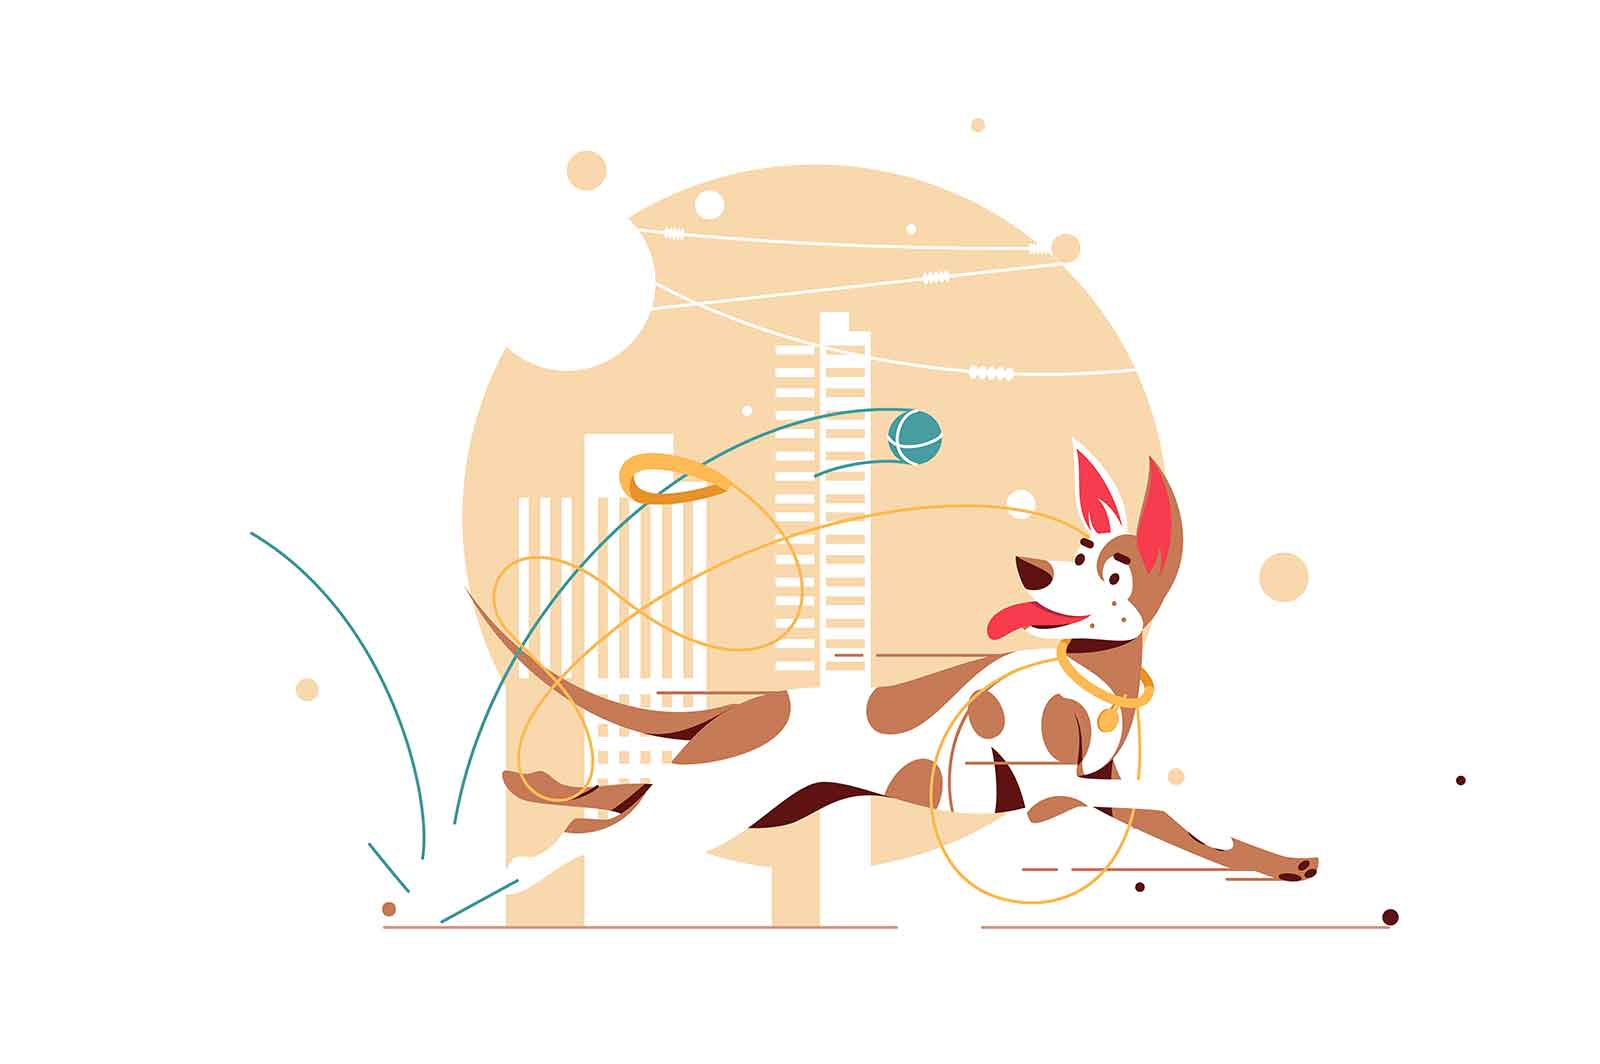 Dog catching ball vector illustration